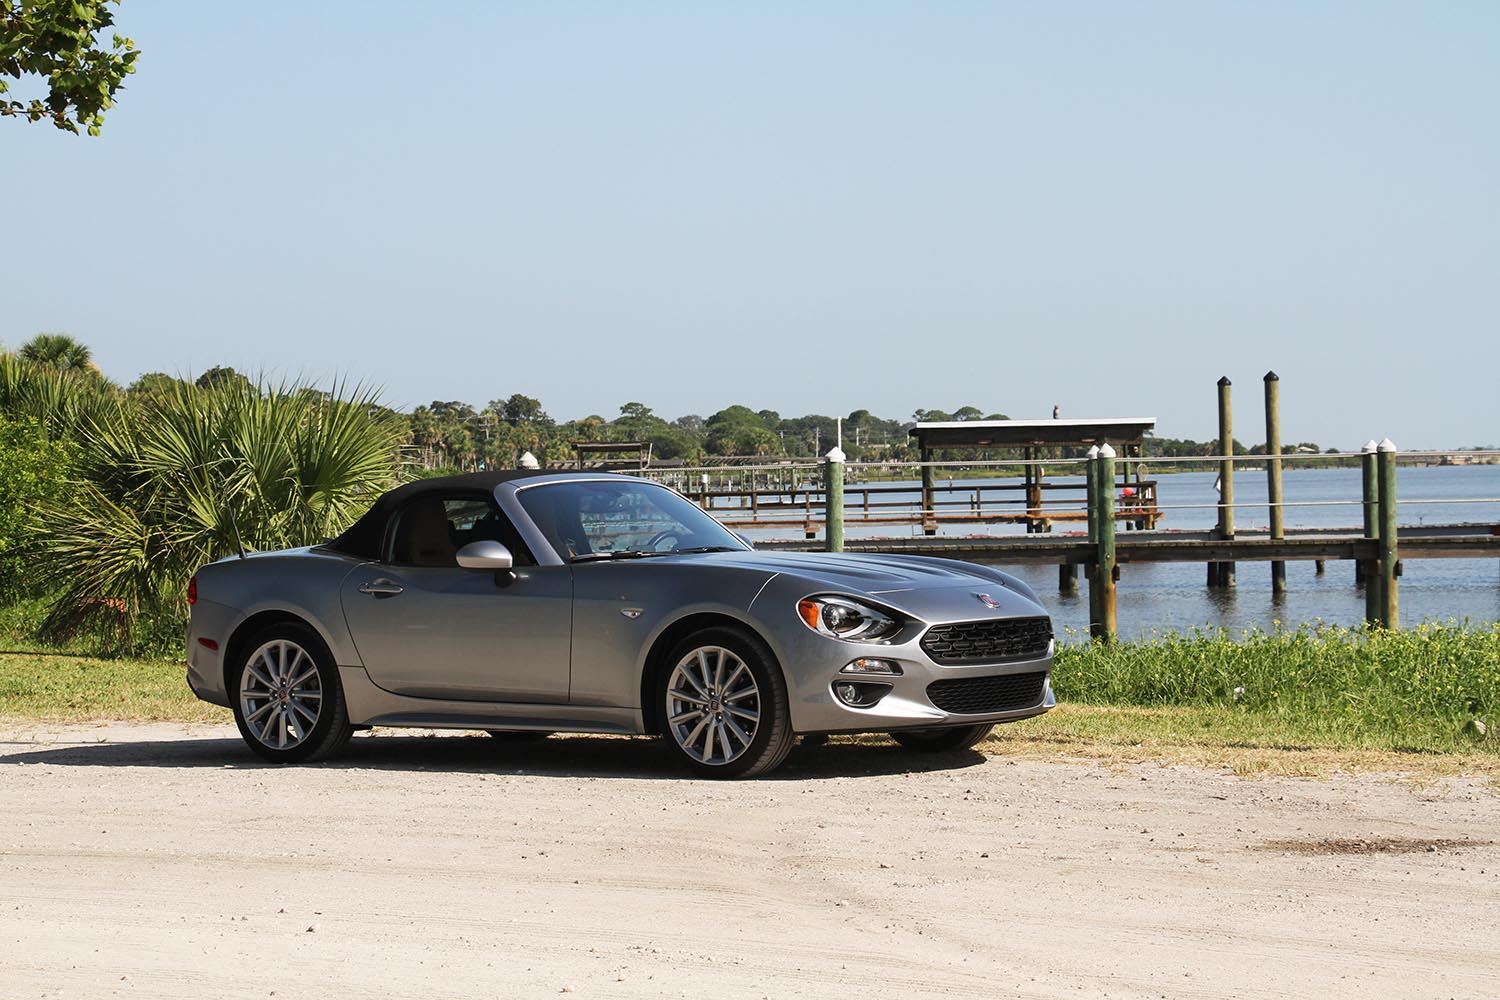 2016 fiat 124 spider grassroots motorsports forum Cars That Are Automatic miata rf automatic vs manual